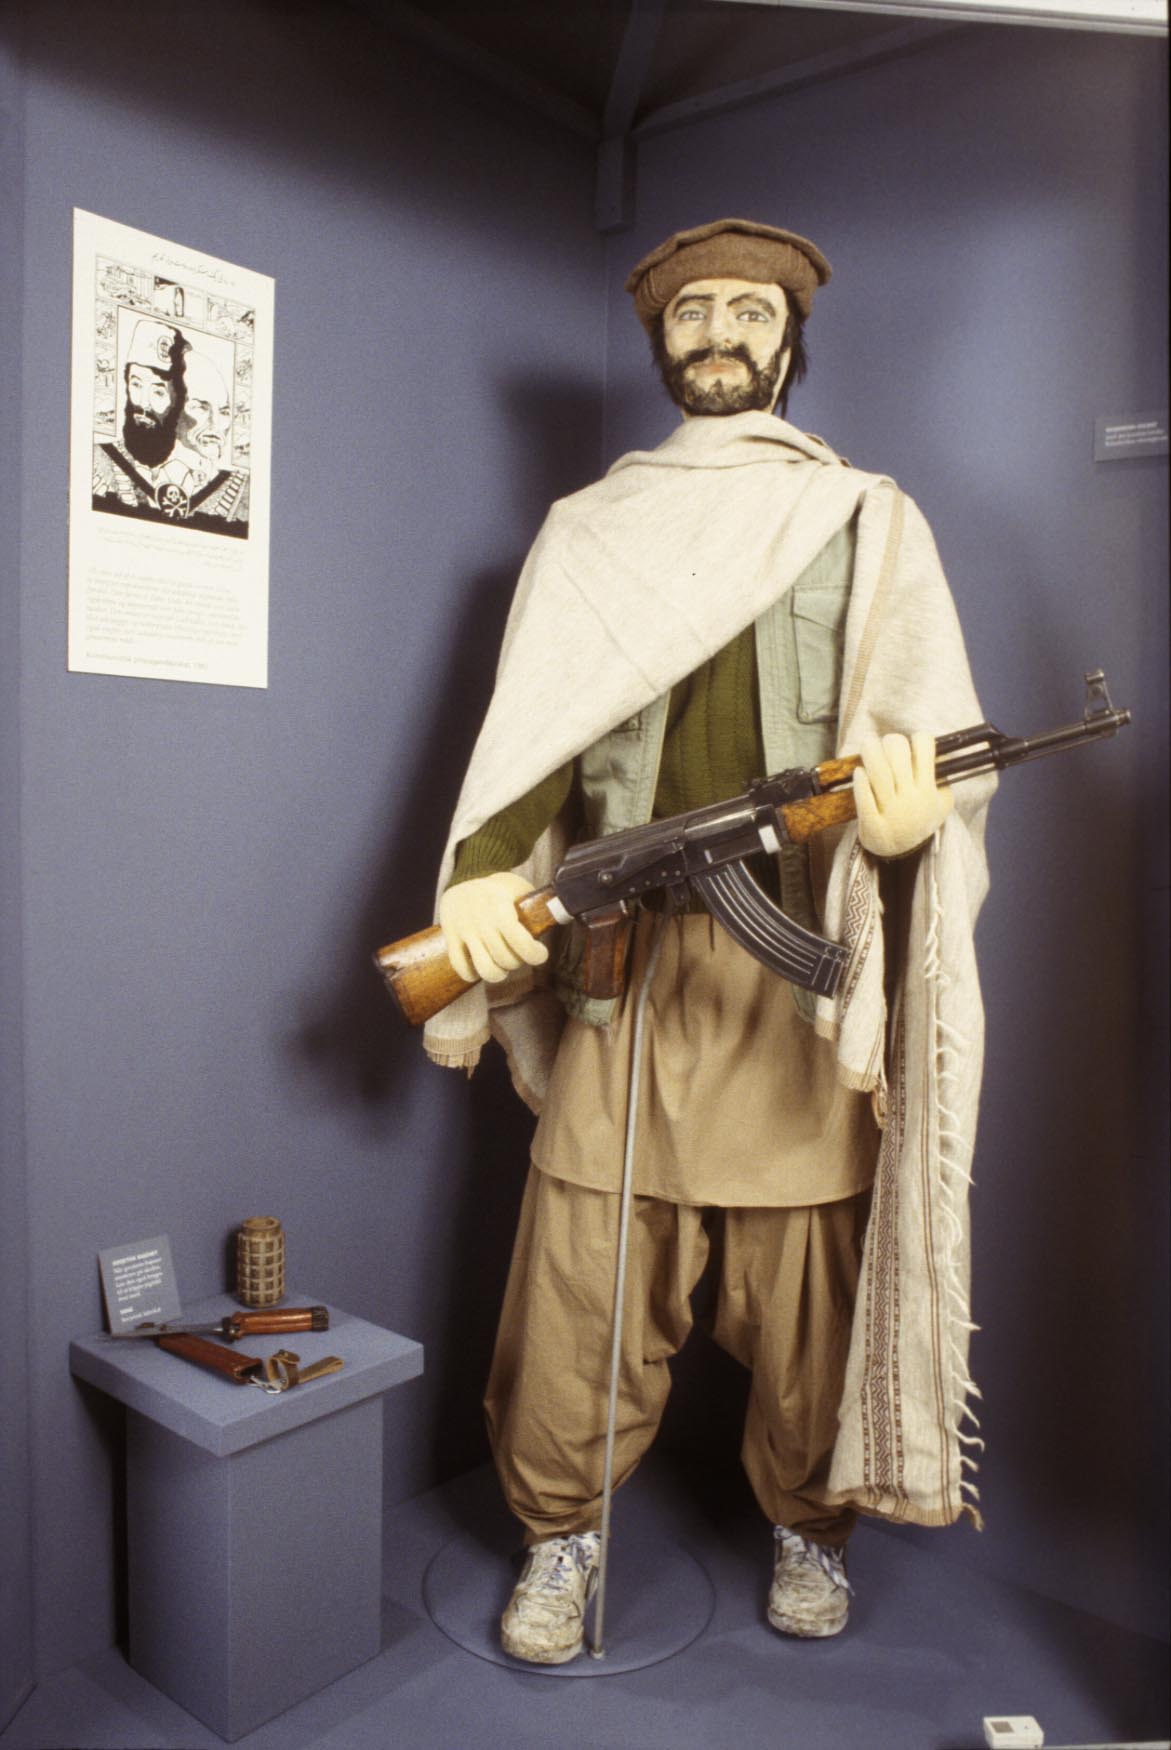 The dummy depicts a mujahid waging jihad (holy war) on the Soviet occupation. Photo: Moesgaard Museum